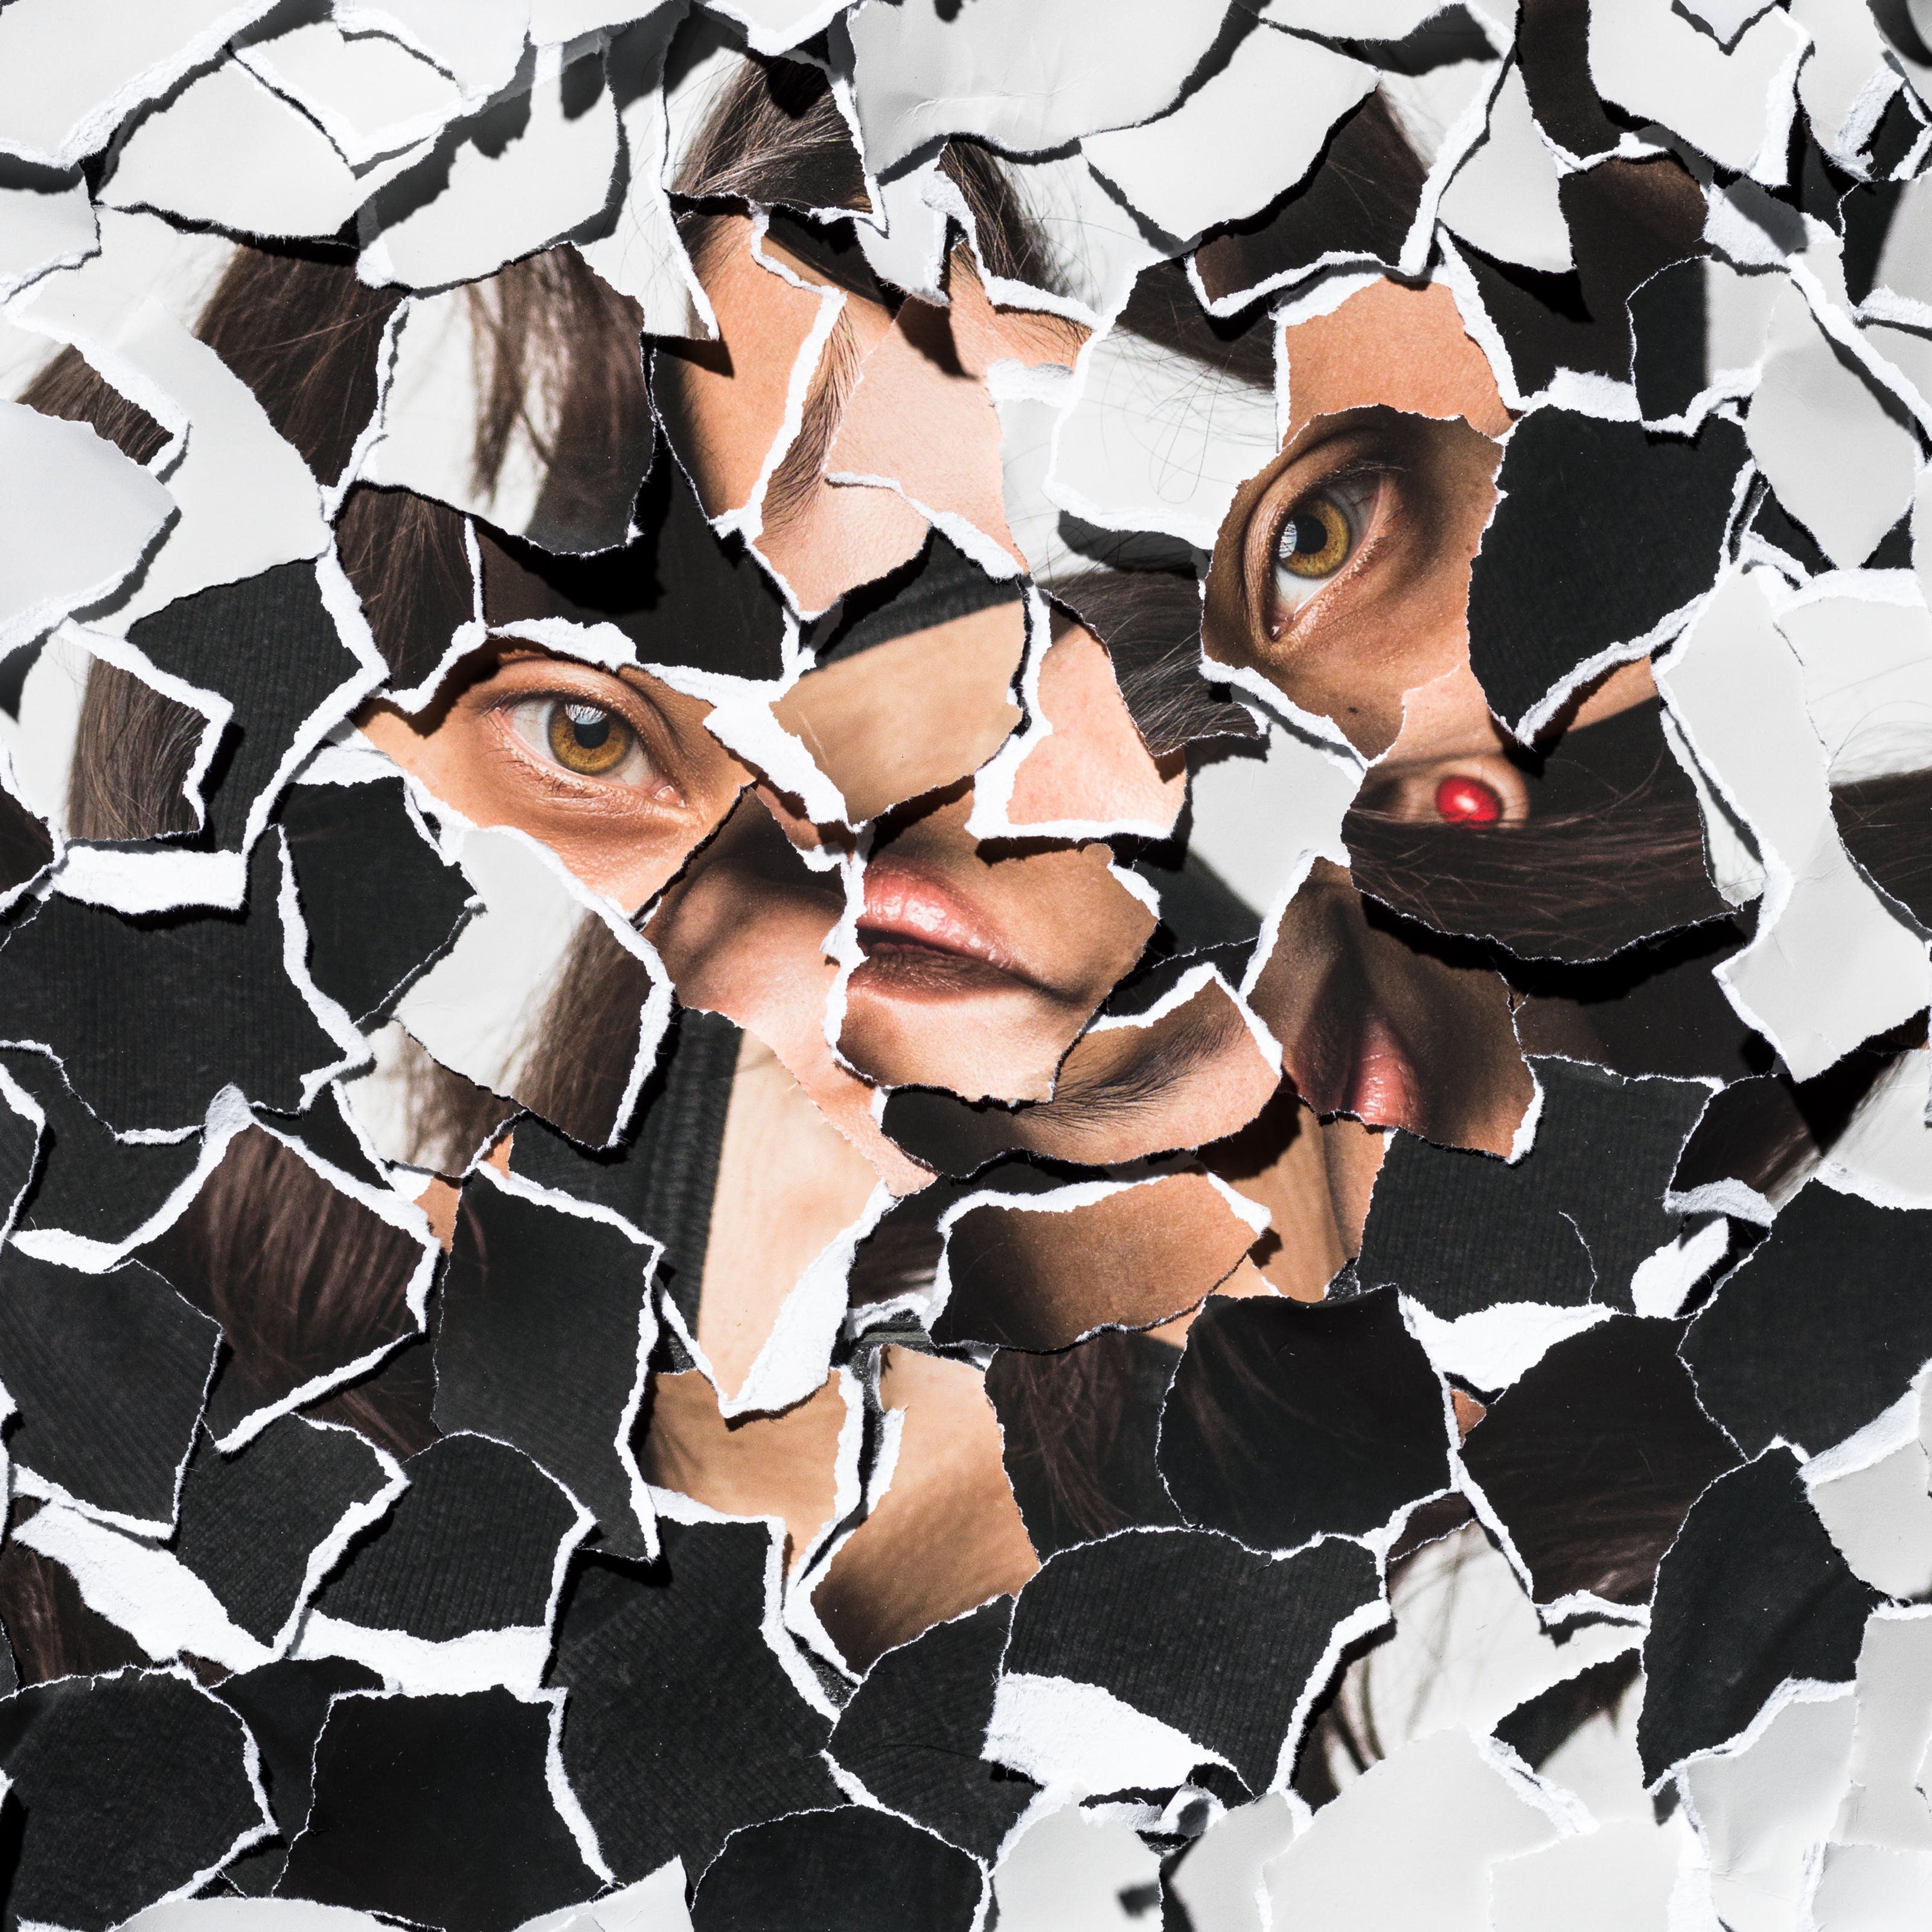 Photograph of a collage of torn up pieces of a photographic print all piled up randomly on top of each other. There are fragments of eyes, lips, hair and dark and light tones.